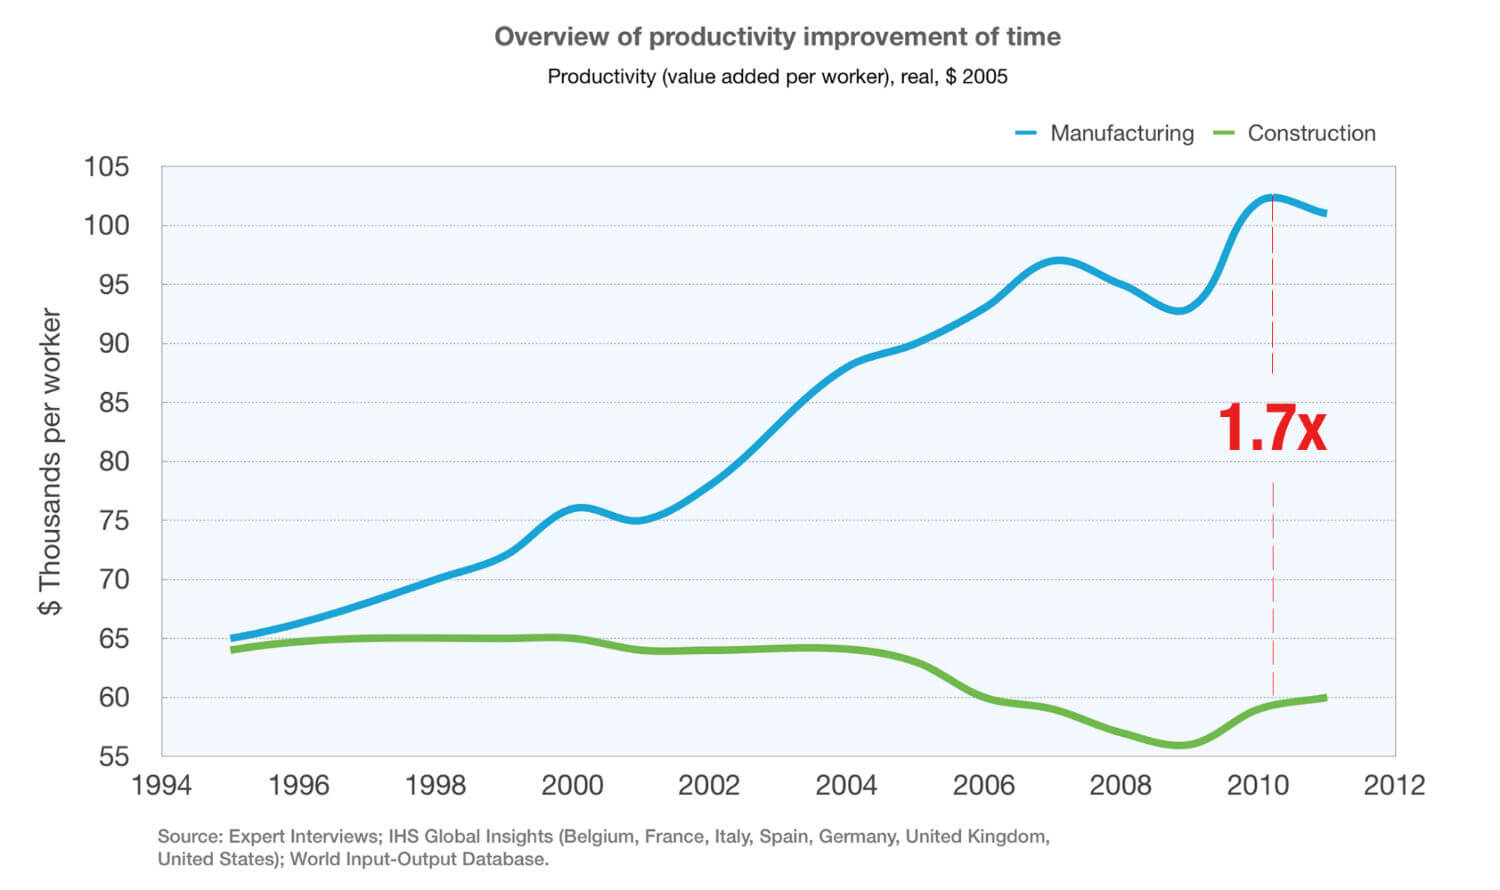 Overview-of-productivity-improvement-of-time-1994-2012